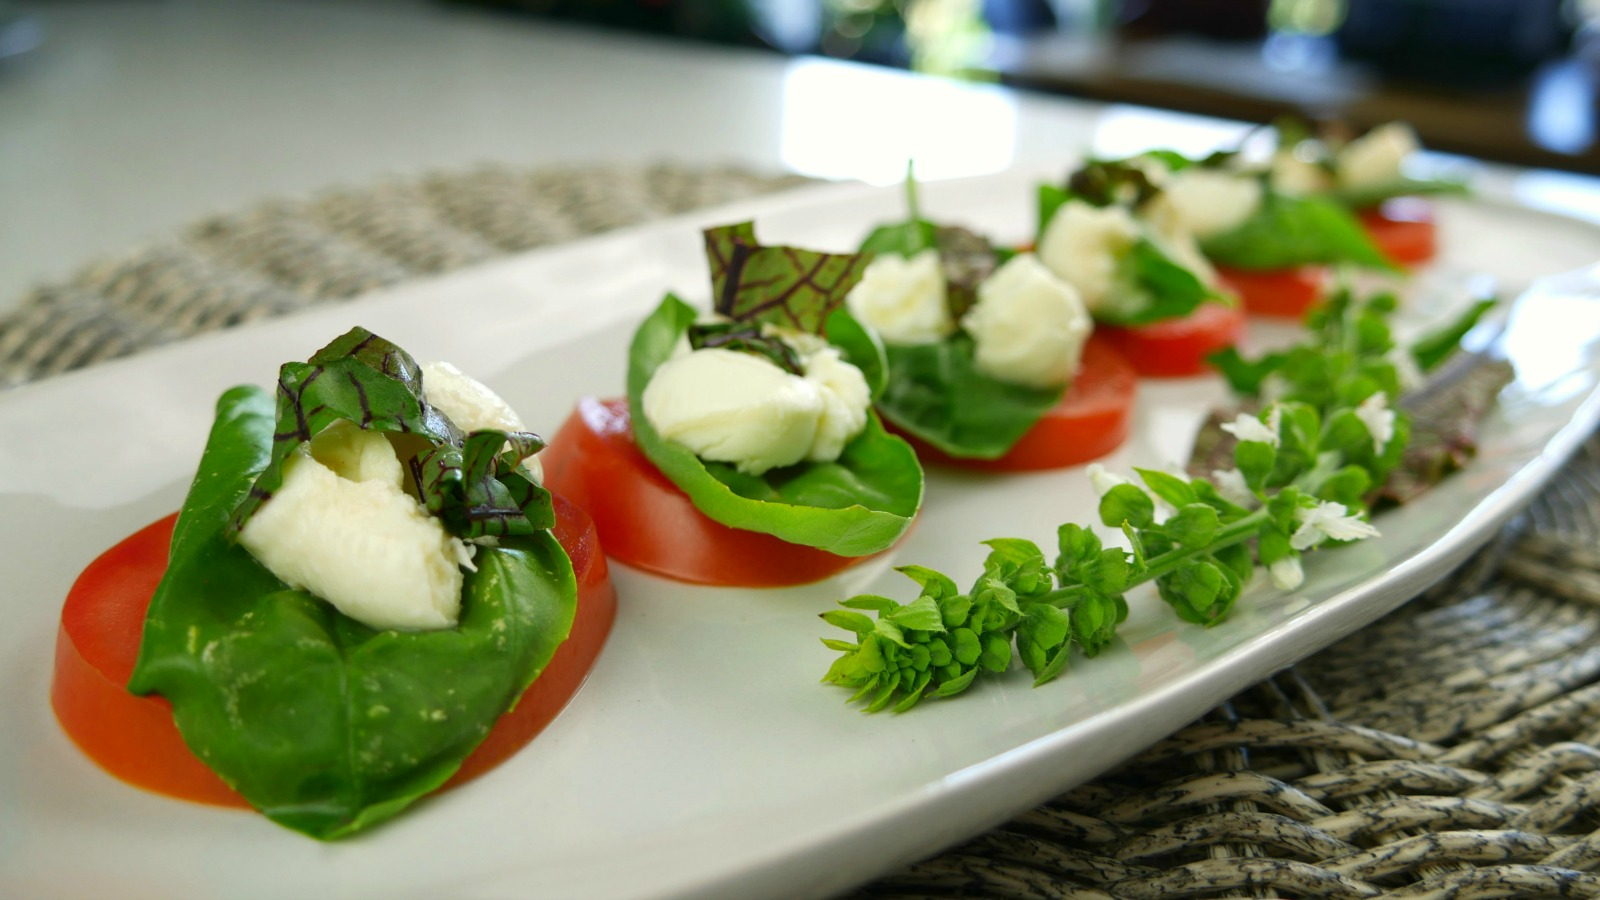 Tomato, basil and bocconcini salad